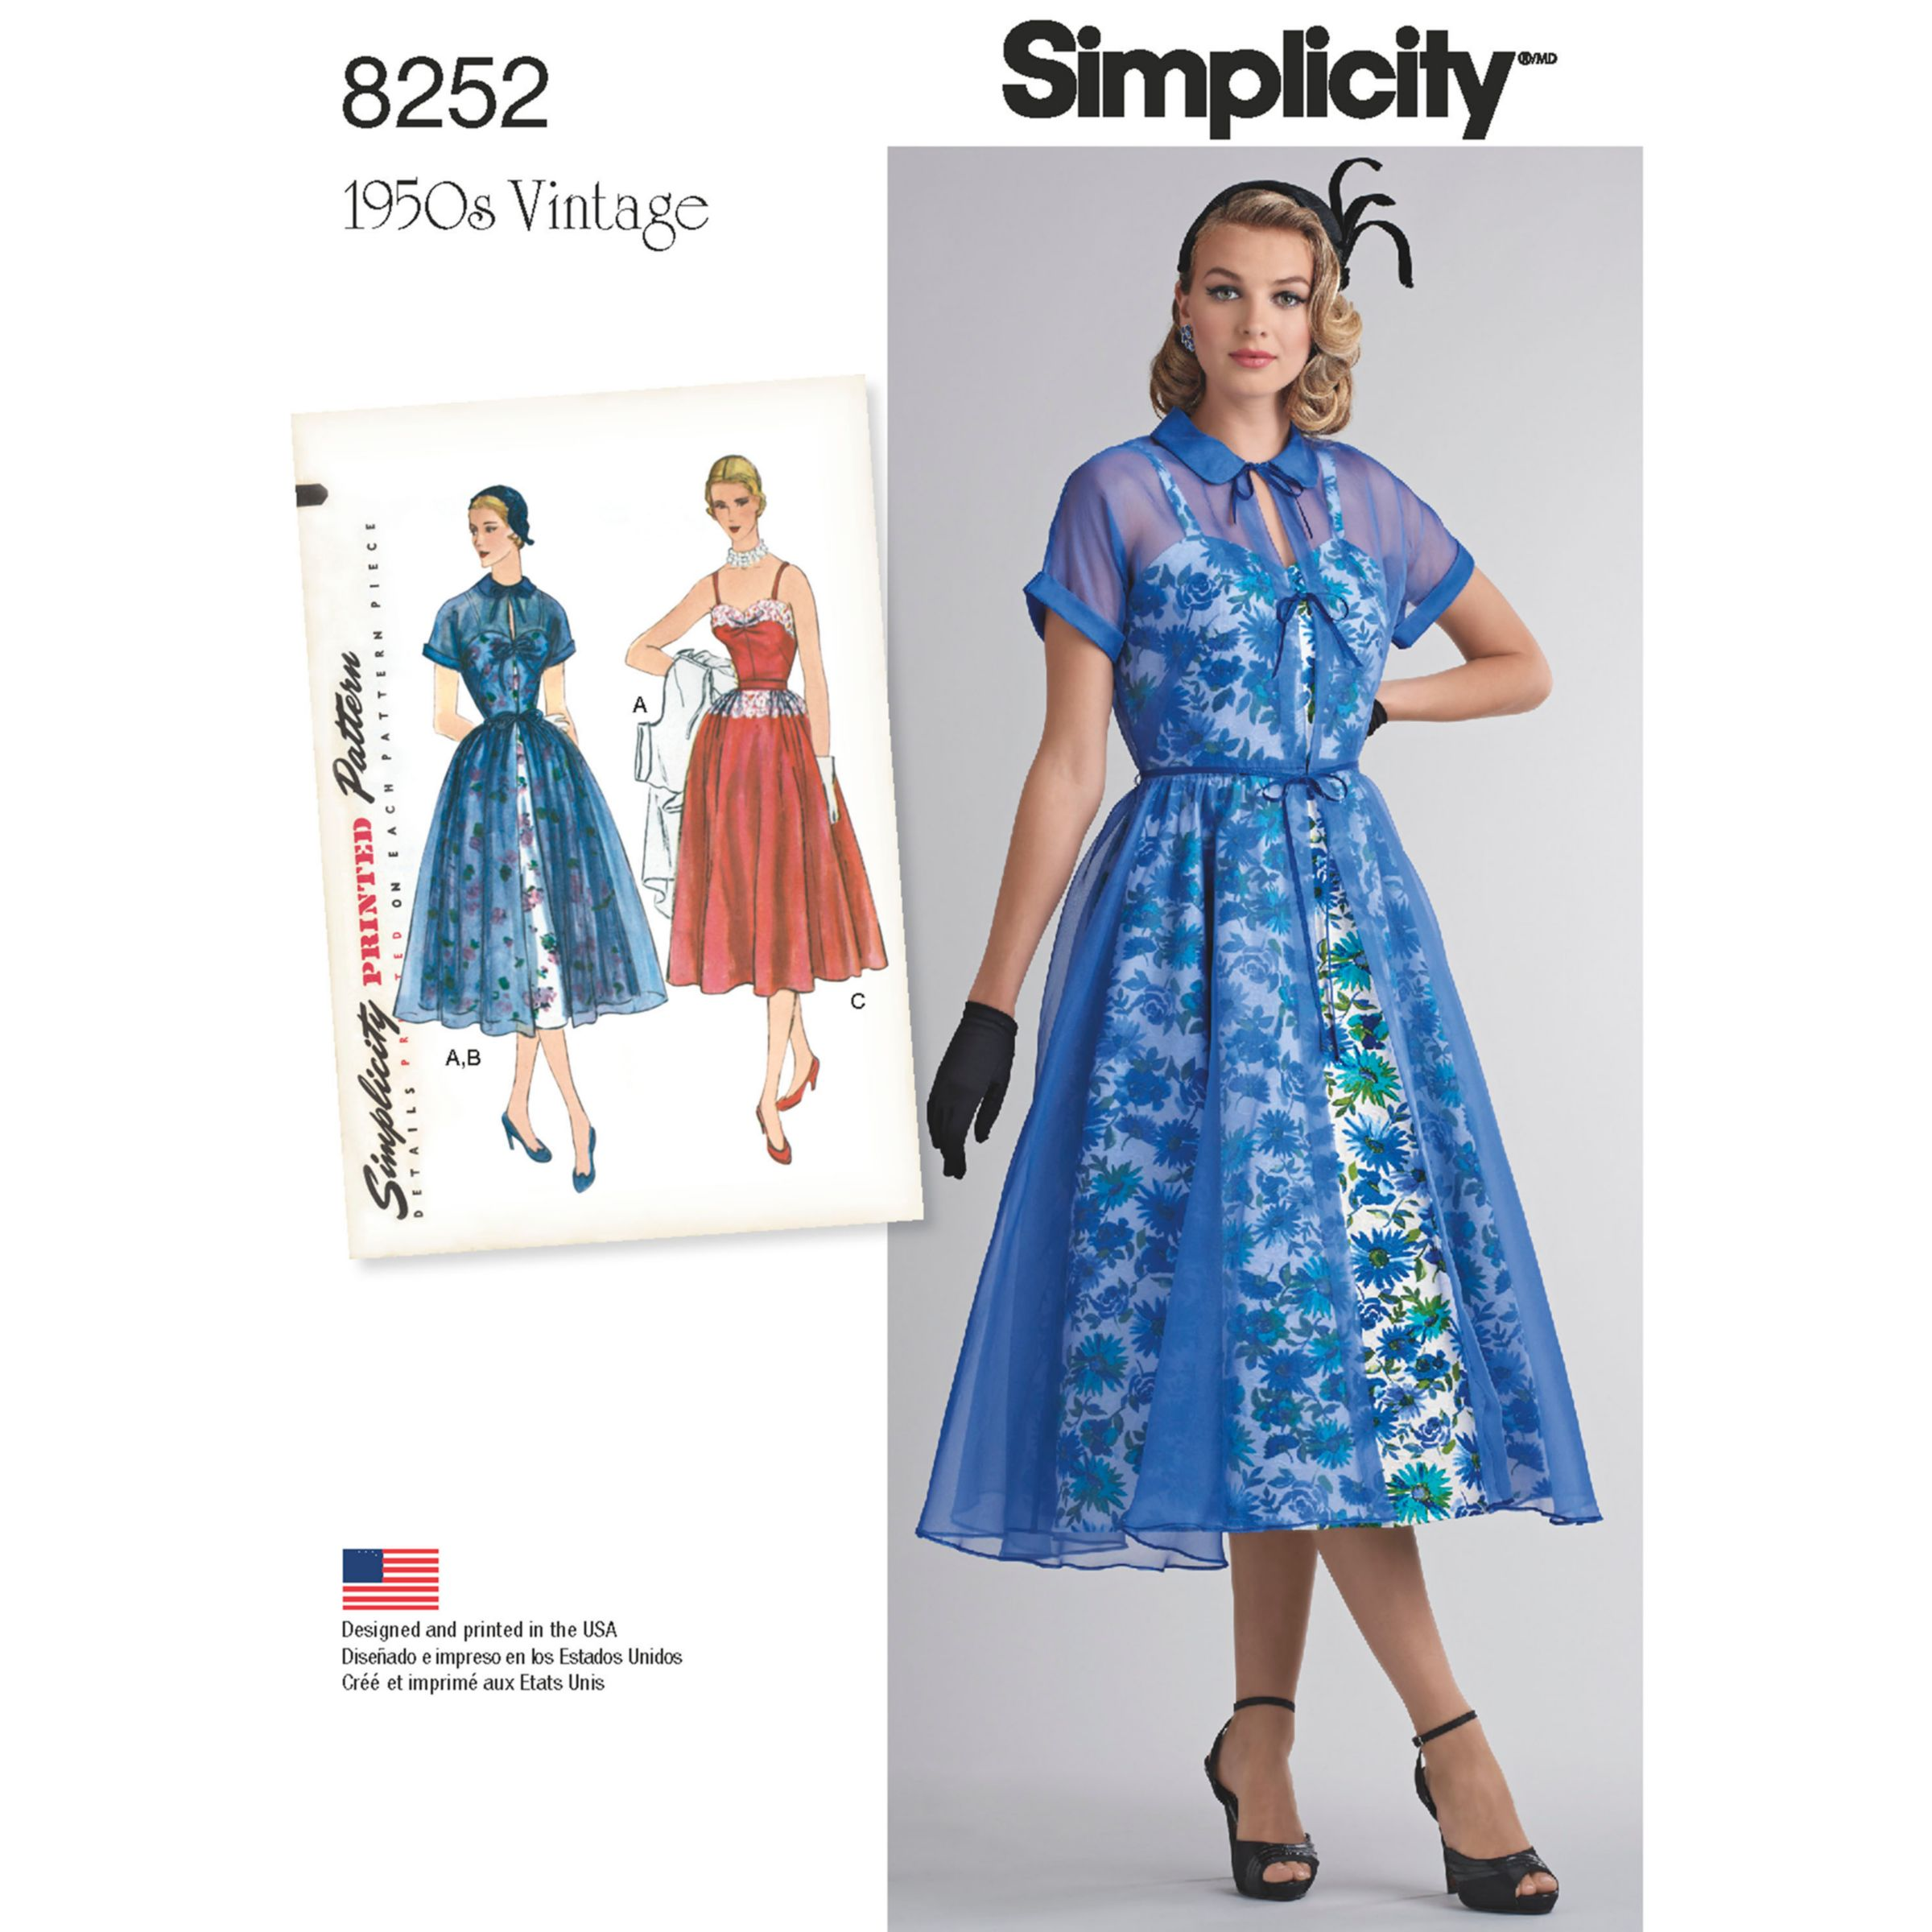 Simplicity Simplicity Vintage Women's 1950s Dress and Redingote Sewing Pattern, 8252